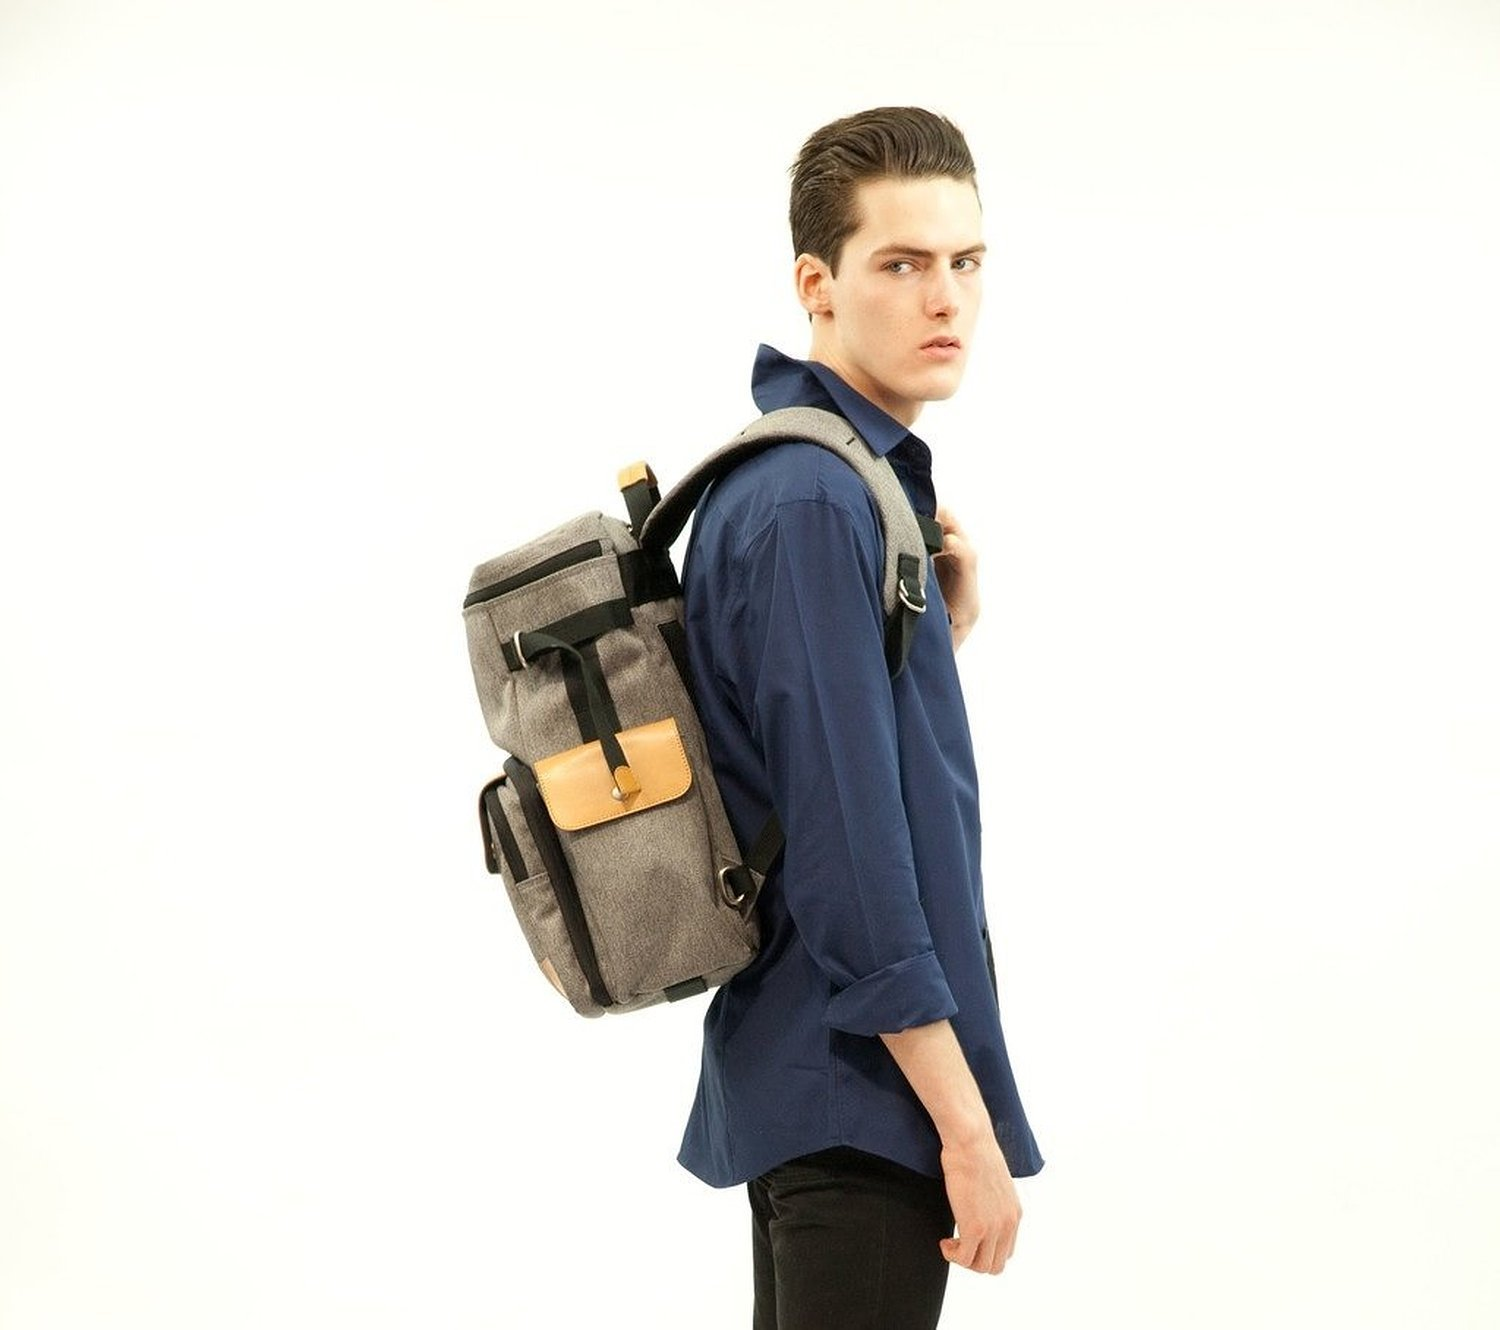 Venque Craft Co. CamPro Camera Backpack (Grey) by Venque Craft Co. (Image #5)